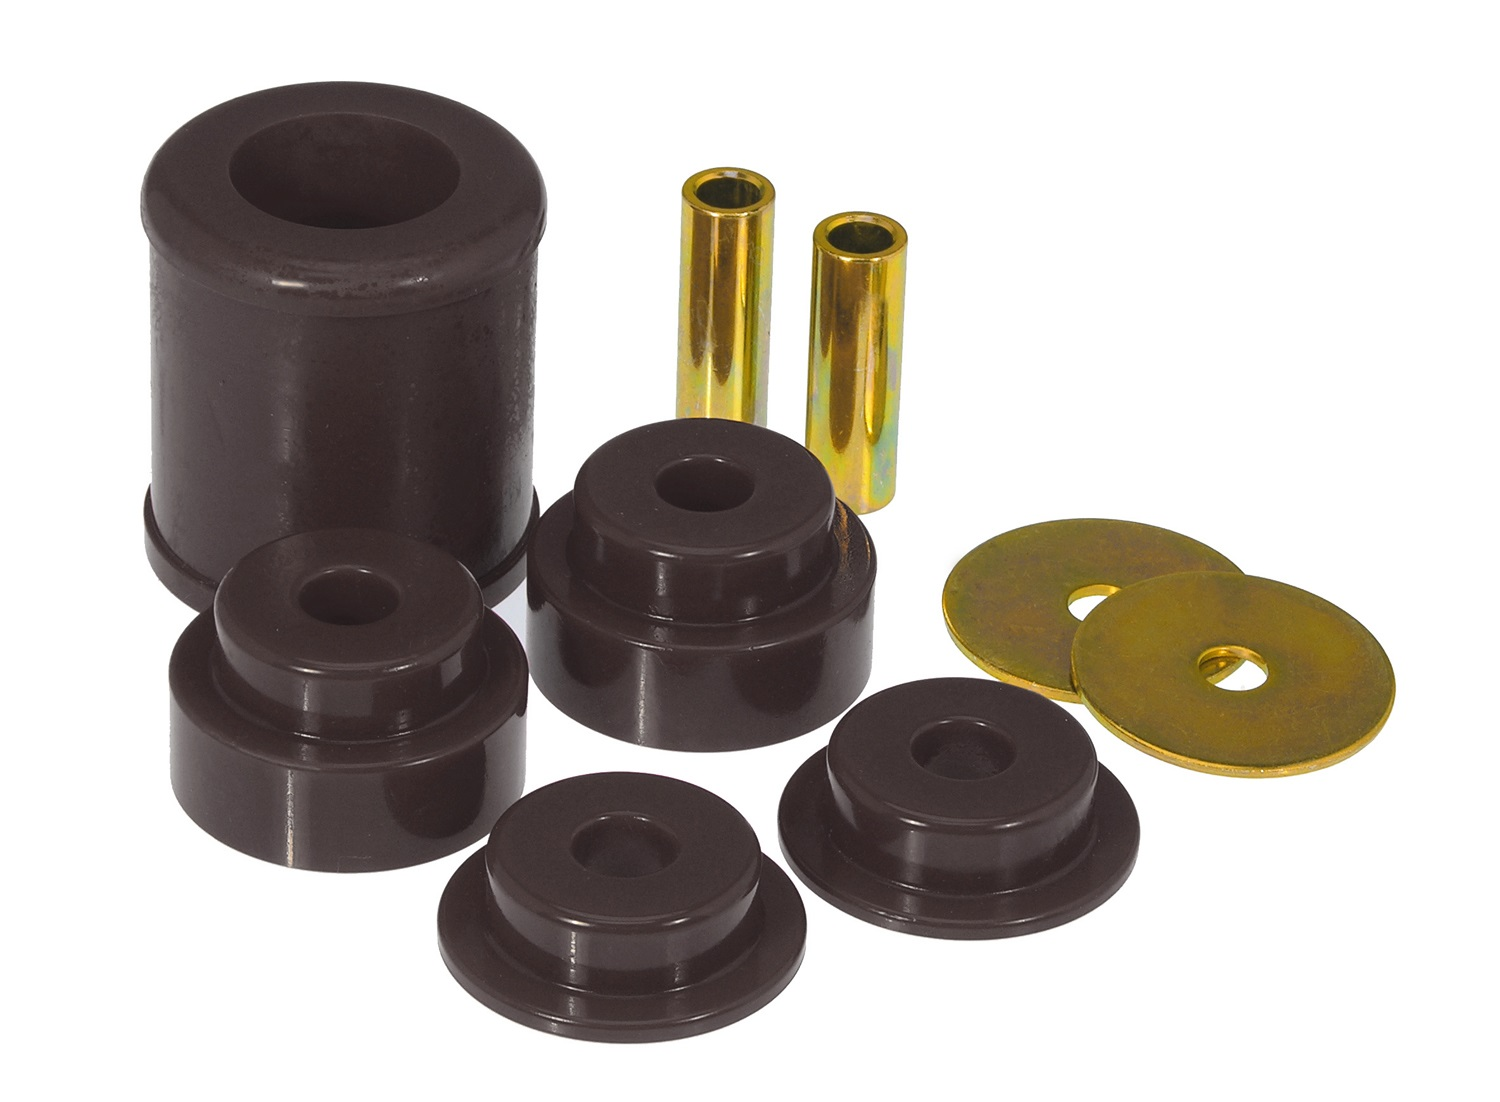 Prothane 14-1603-BL Differential Bushing Kit Fits 03-09 350Z